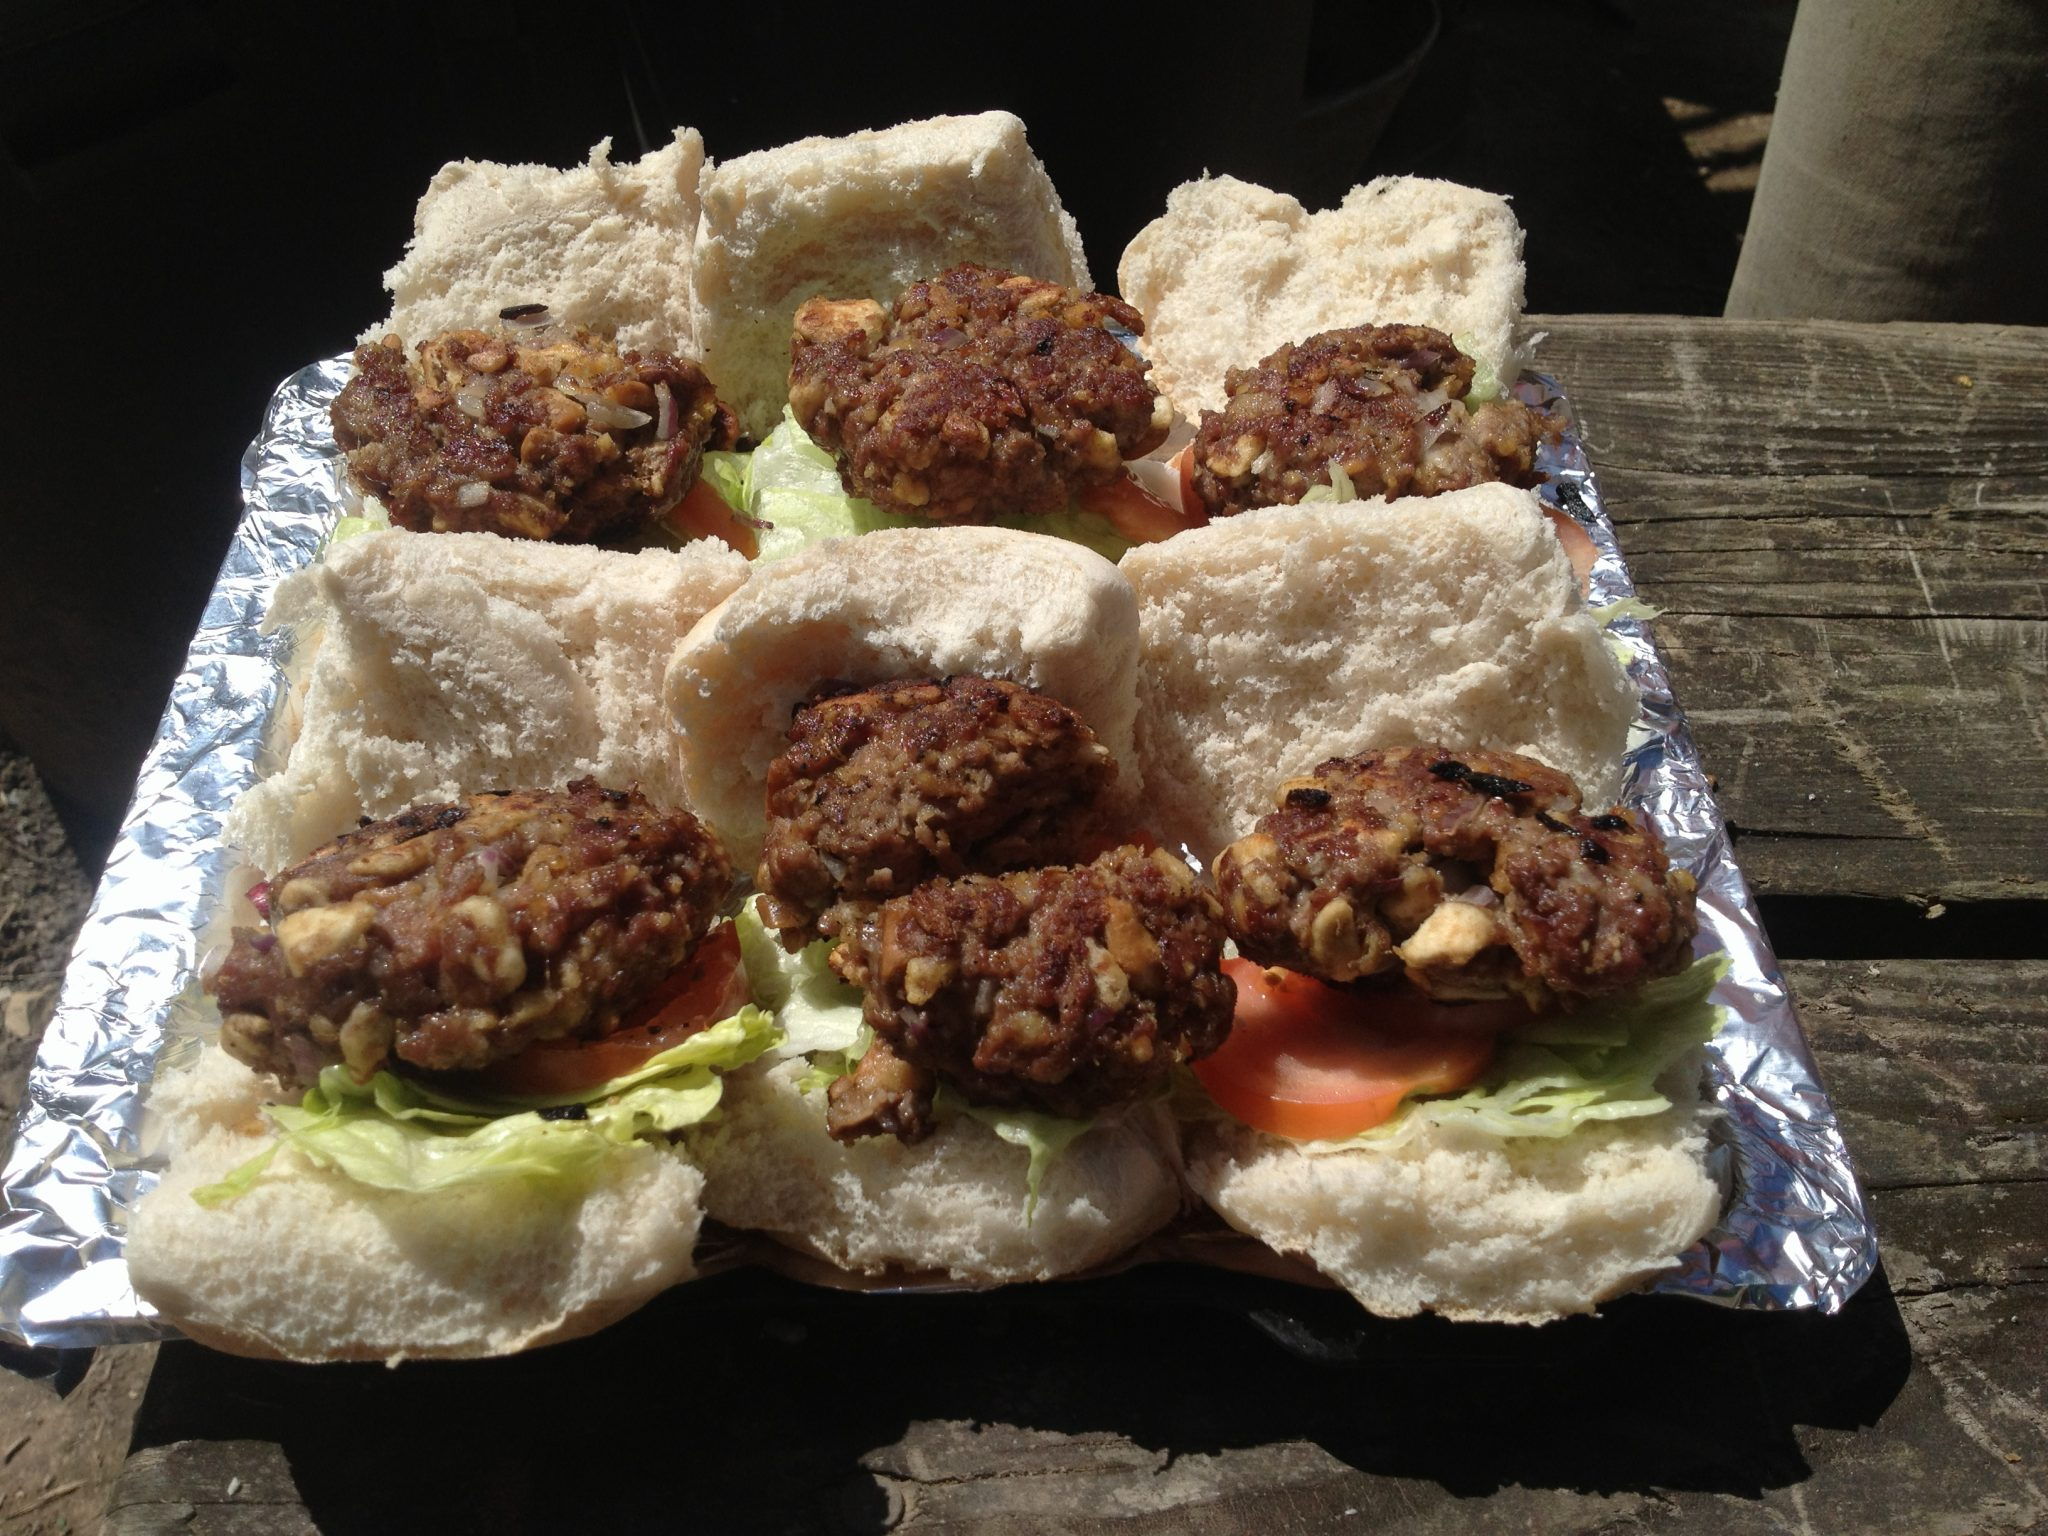 Burgers cooked and made entirely on our woodland site using an outdoor kitchen